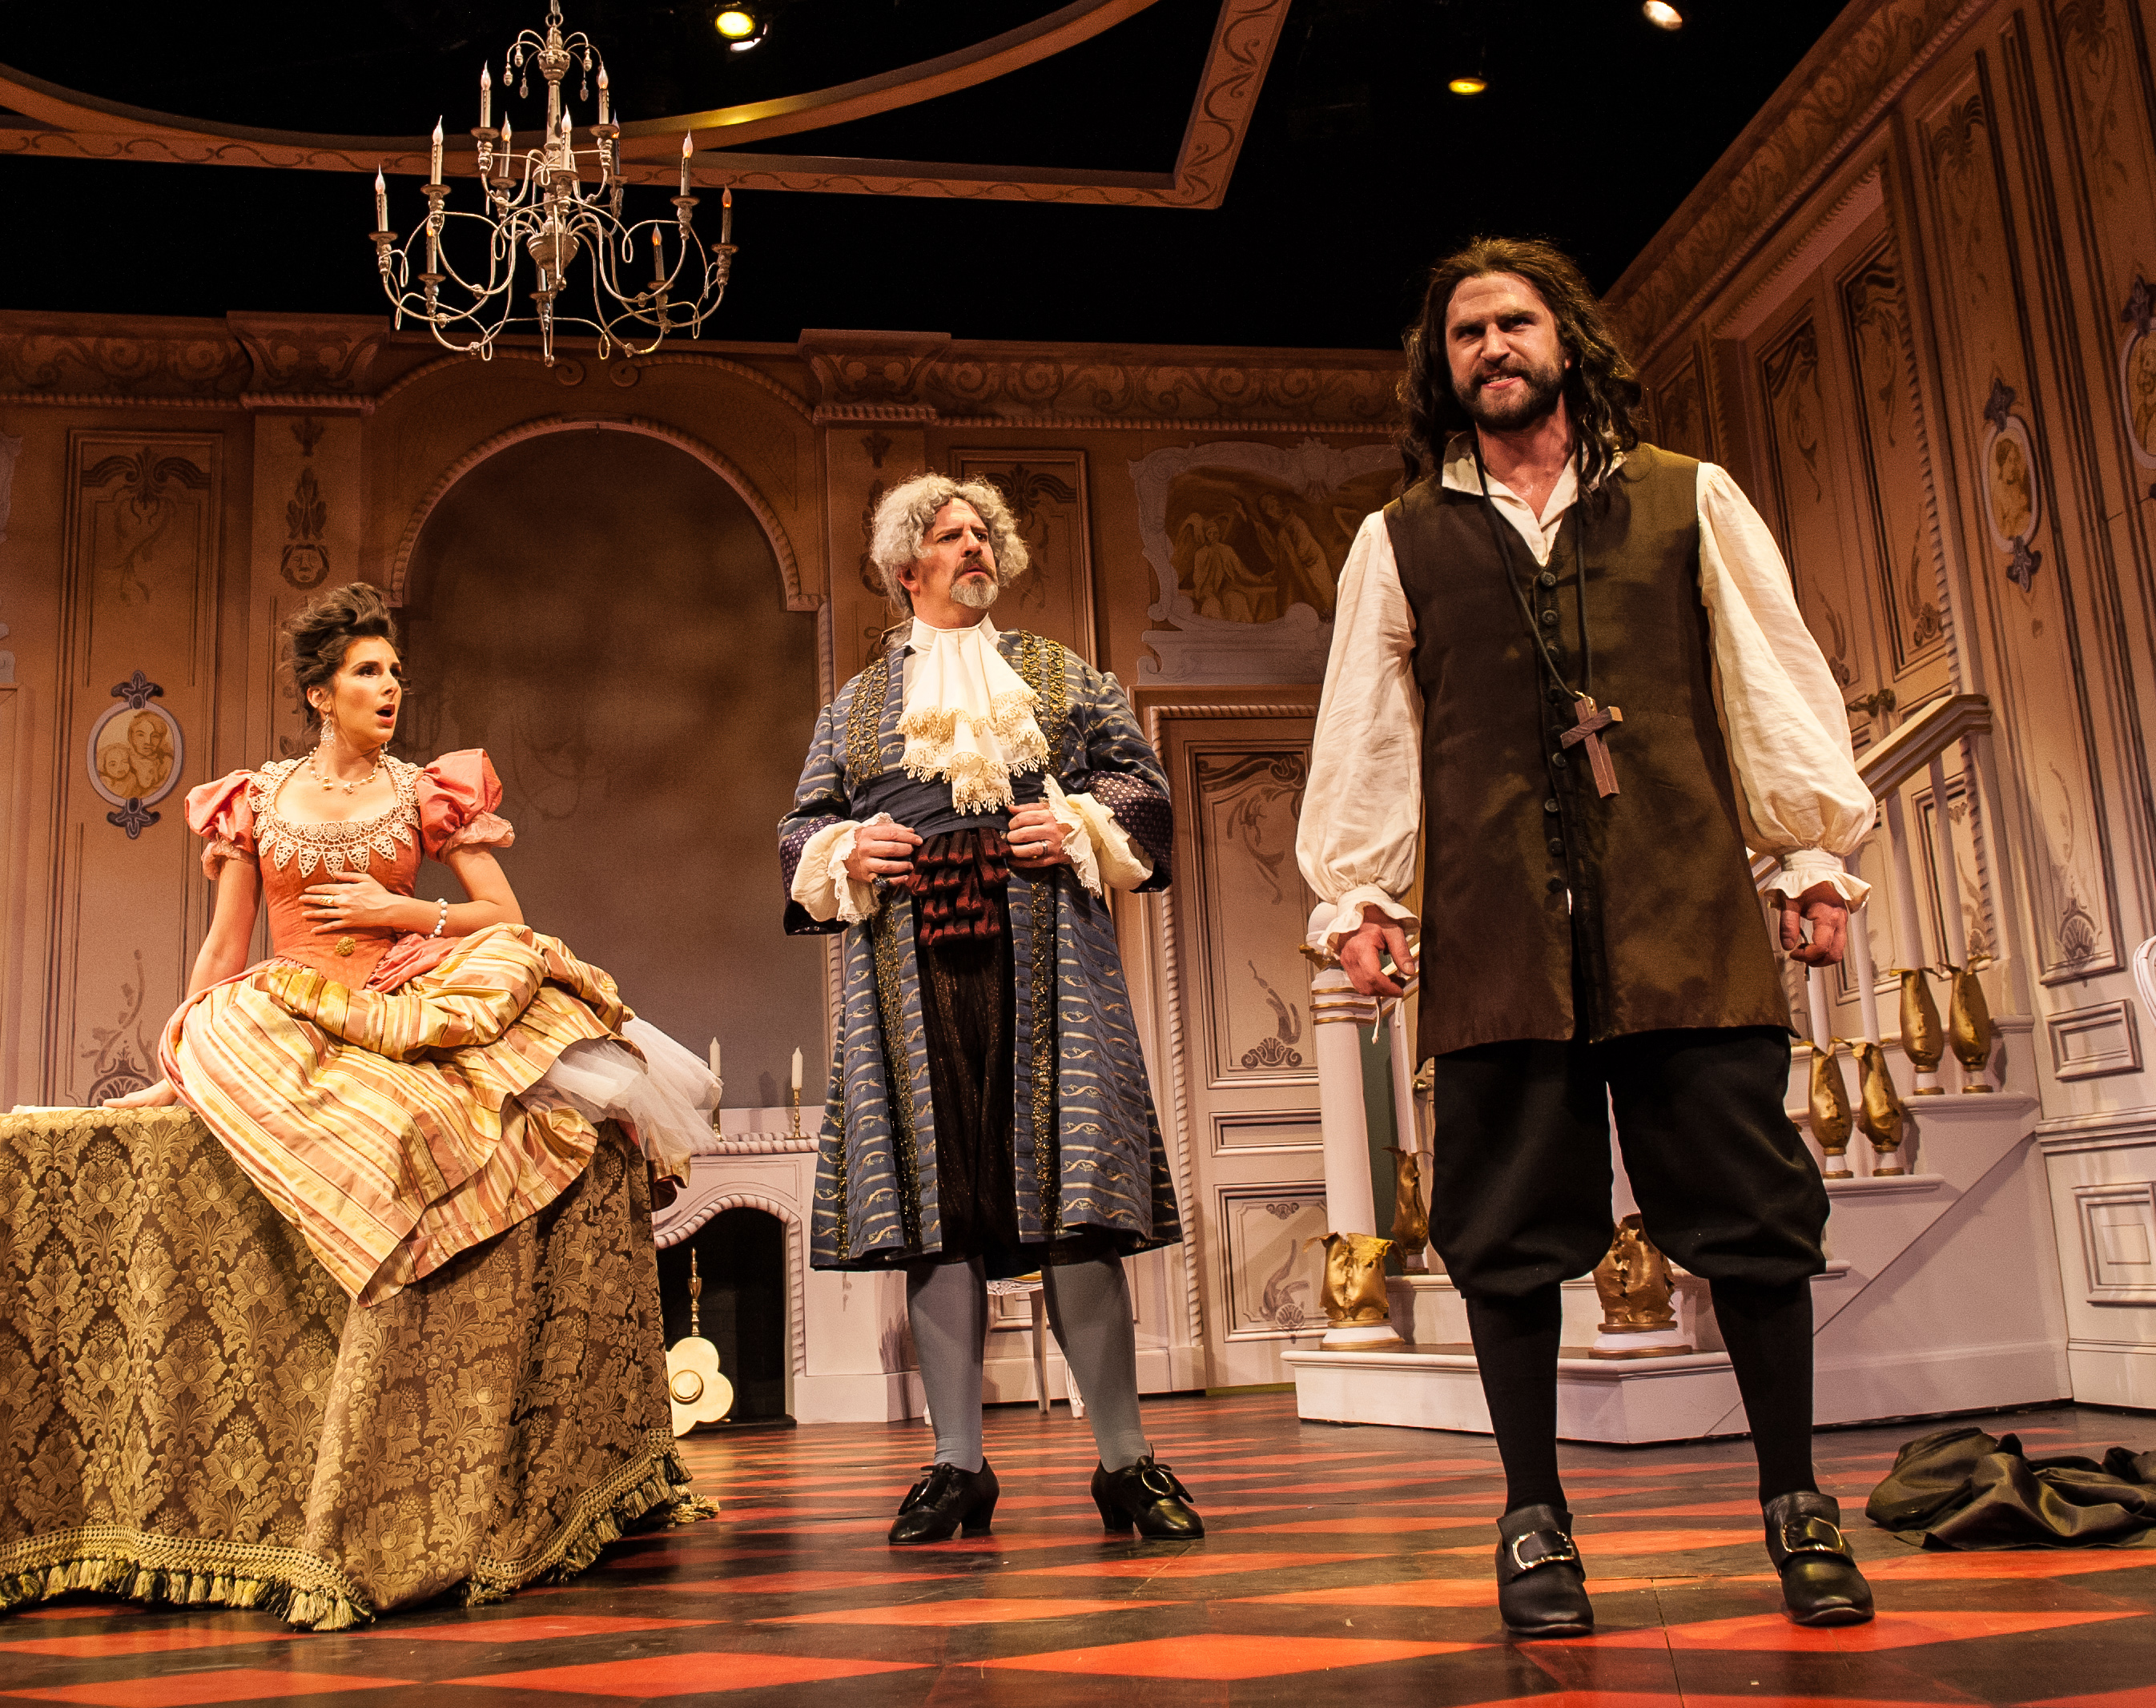 Tartuffe: Well-Played Comedy Takes A Jab At Hypocrisy